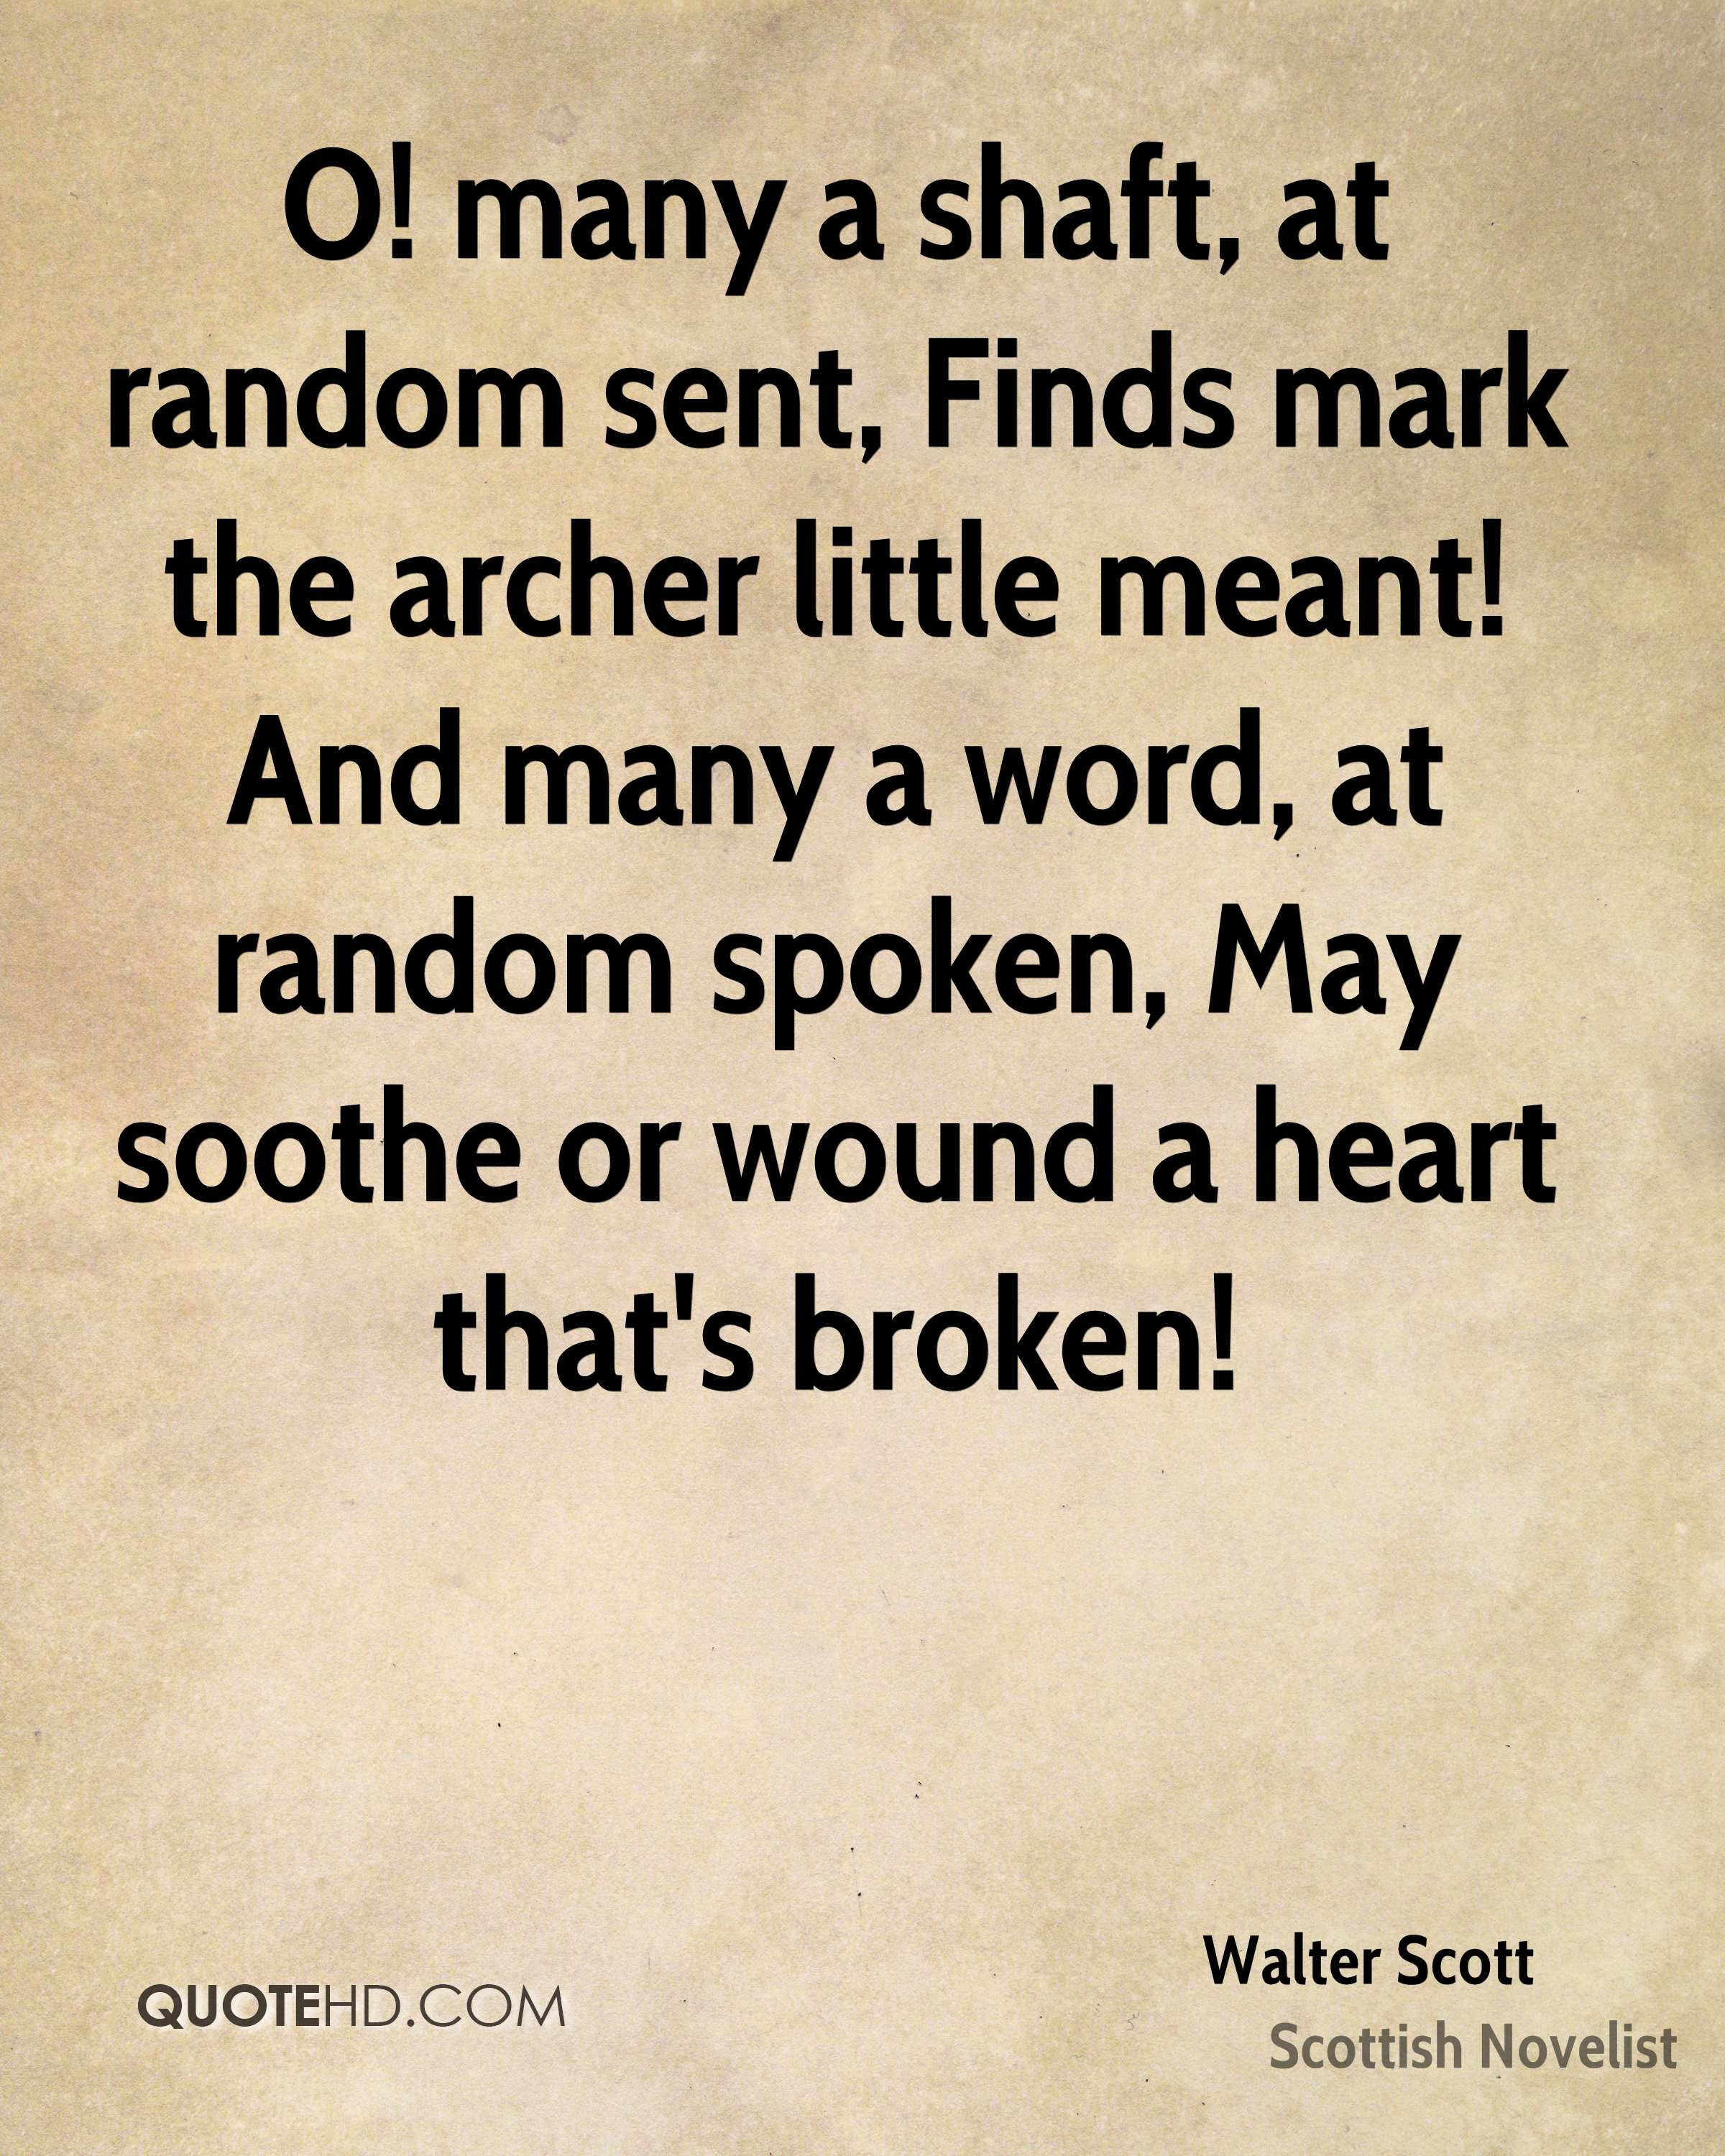 O! many a shaft, at random sent, Finds mark the archer little meant! And many a word, at random spoken, May soothe or wound a heart that's broken!